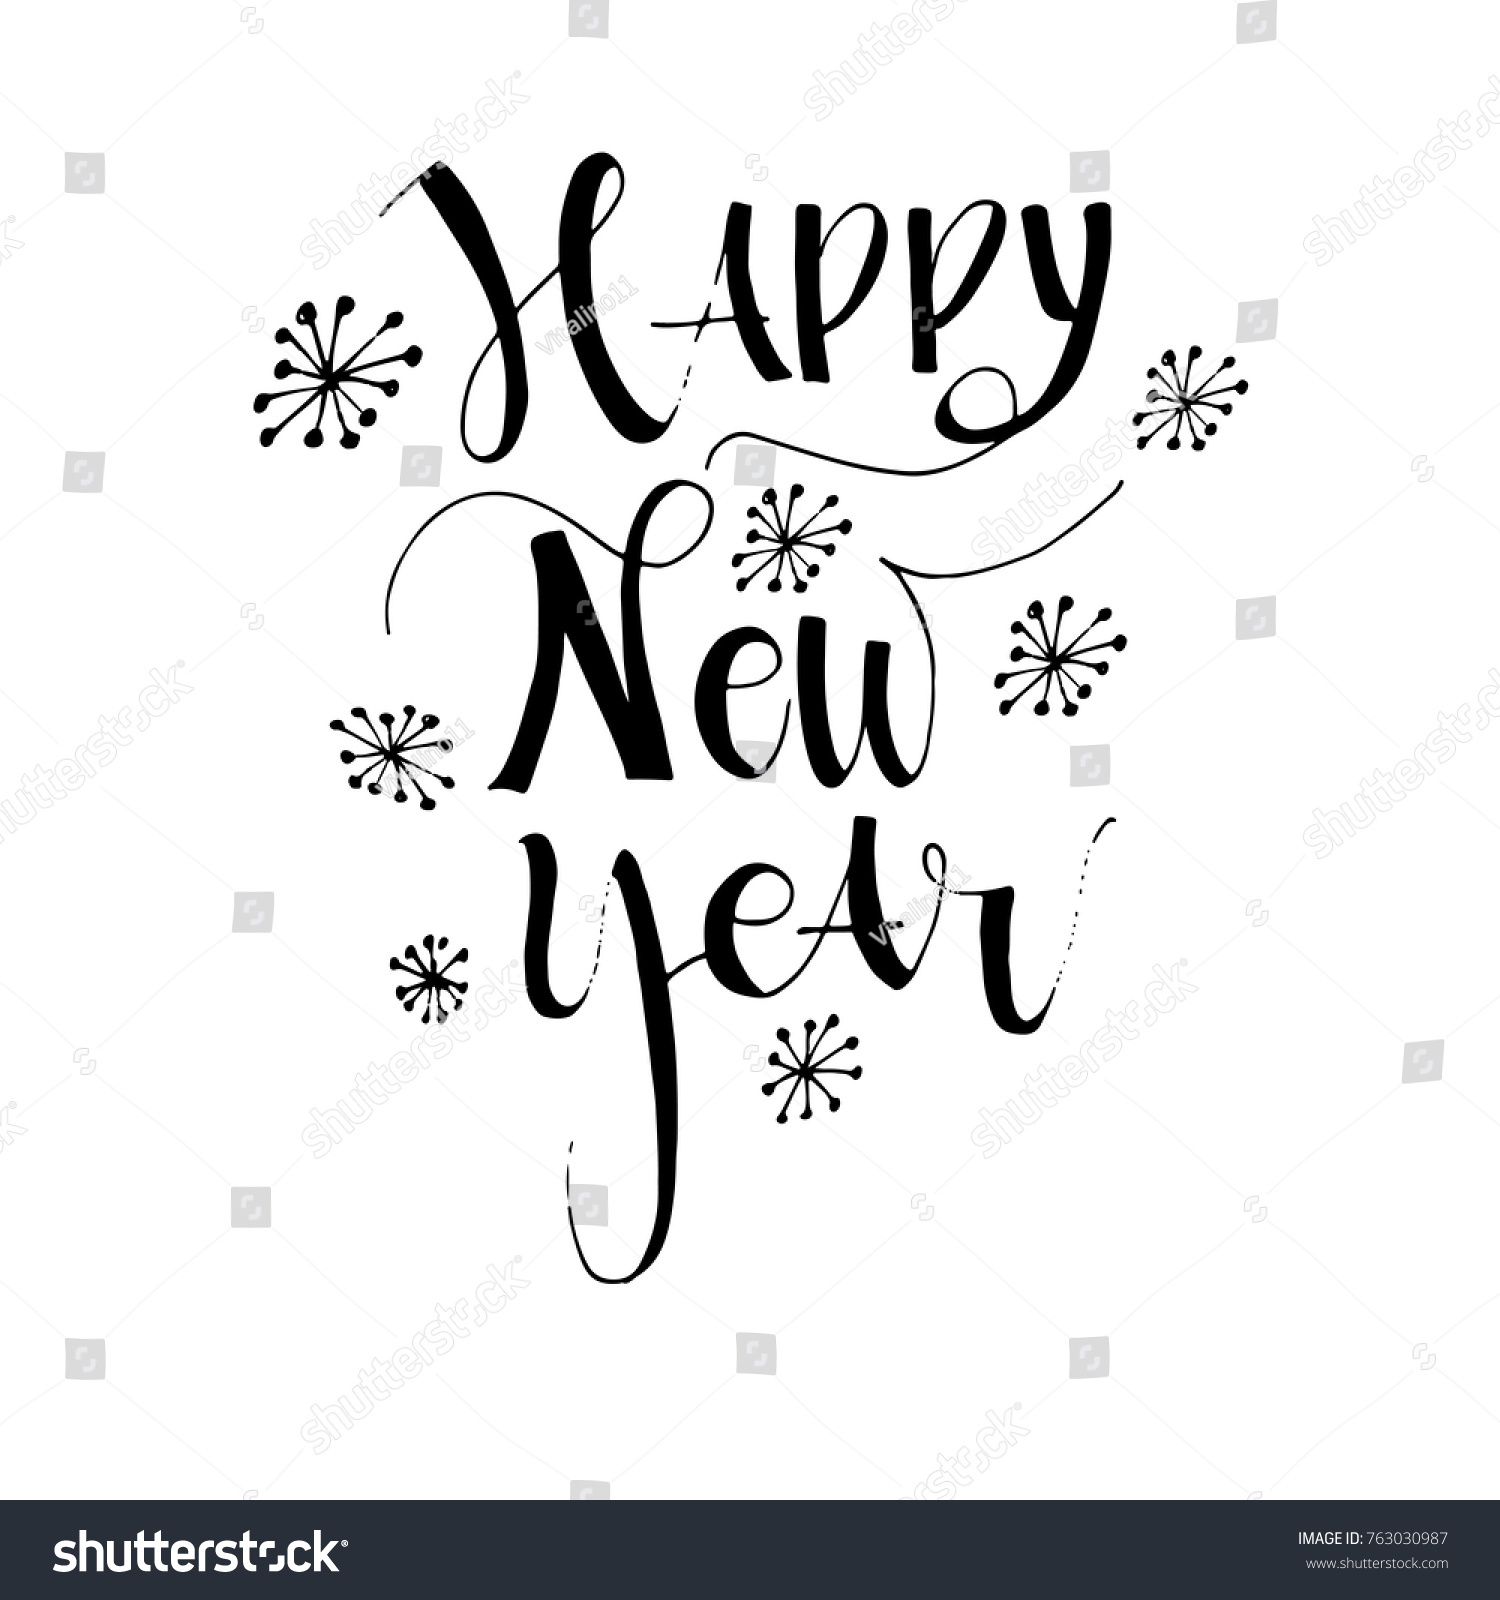 happy new year card hand drawn greeting phrase modern brush calligraphy isolated on